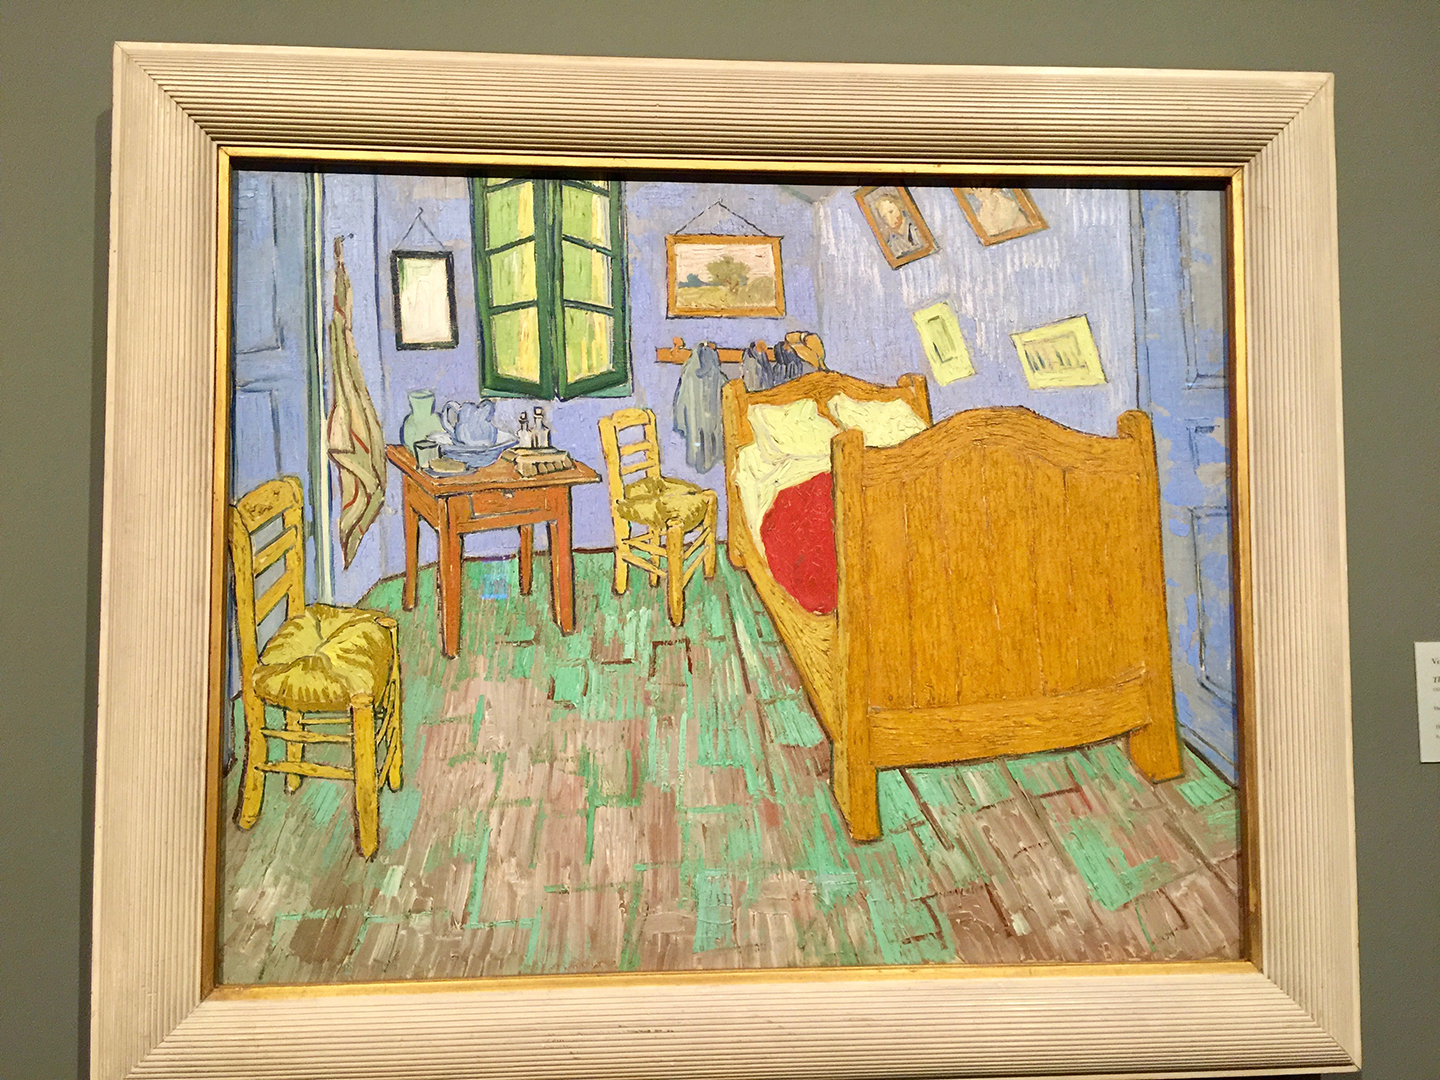 Van Gogh Bedroom in ArlesVan Gogh Bedroom in Arles   Project Unit 83. The Bedroom Van Gogh Painting. Home Design Ideas